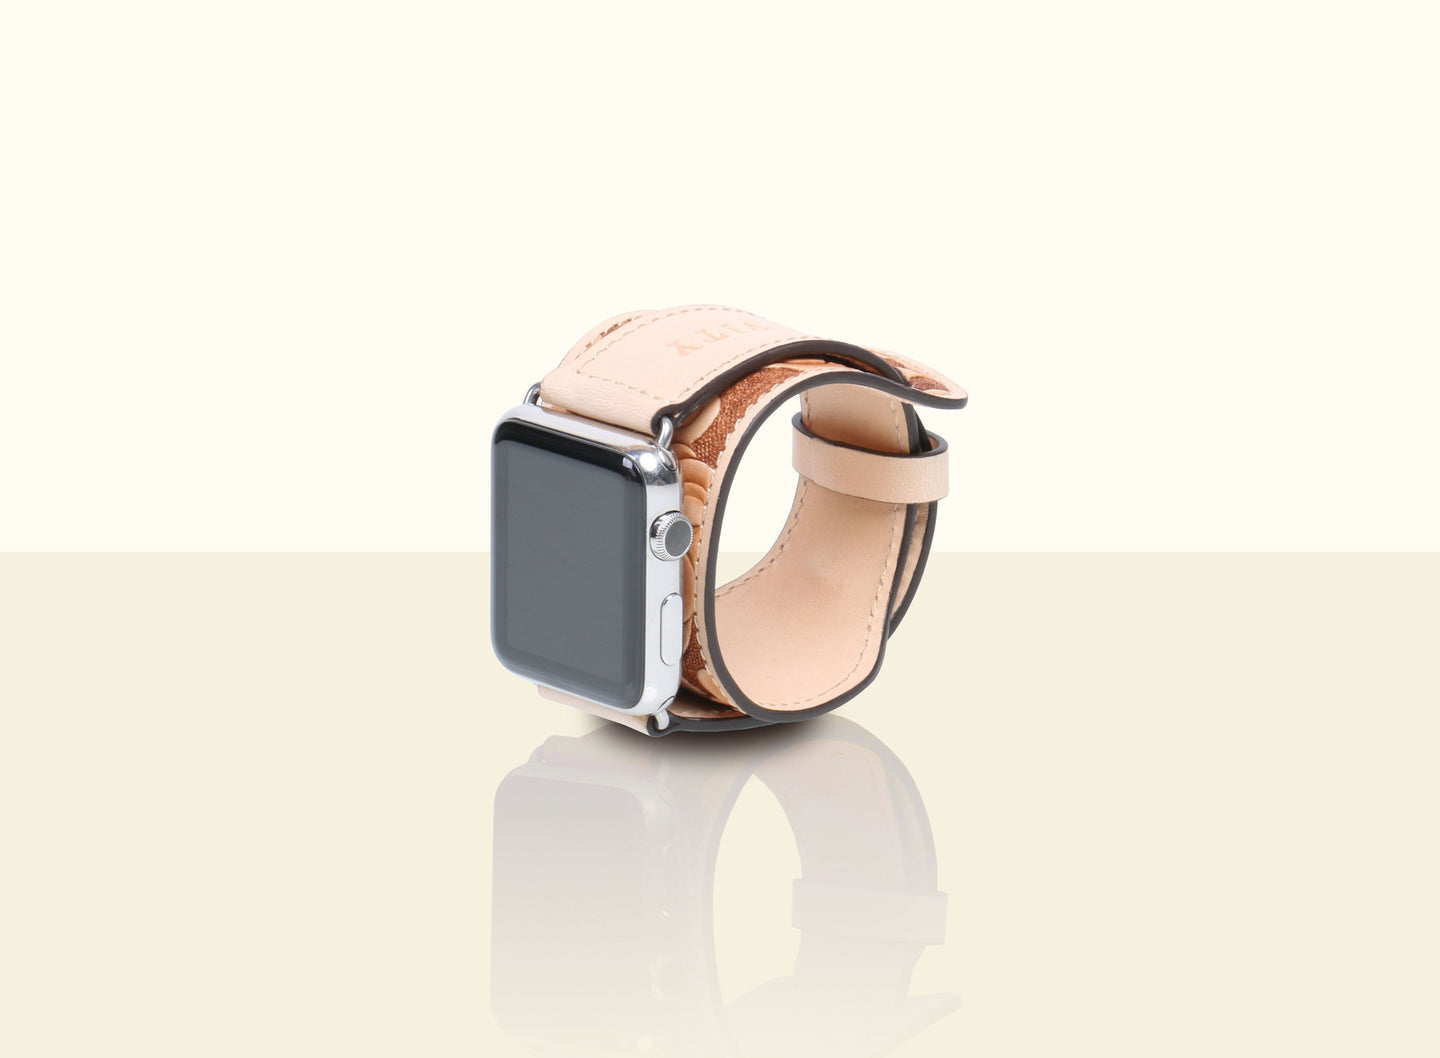 Preorder - Glorious Clouds Apple Watch Band 38mm - Original